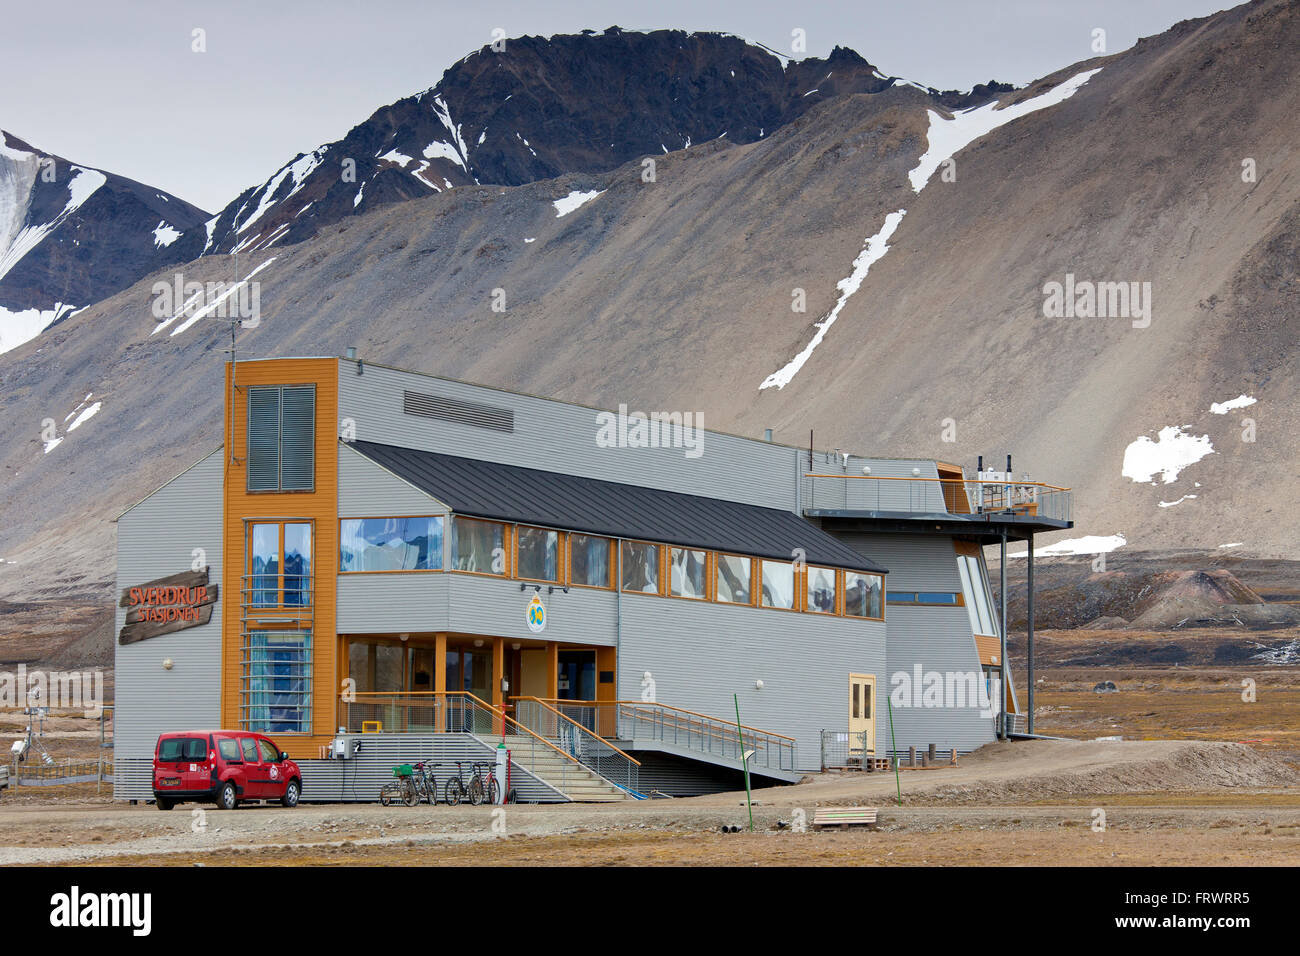 Research station of the Norsk Polarinstitutt / Norwegian